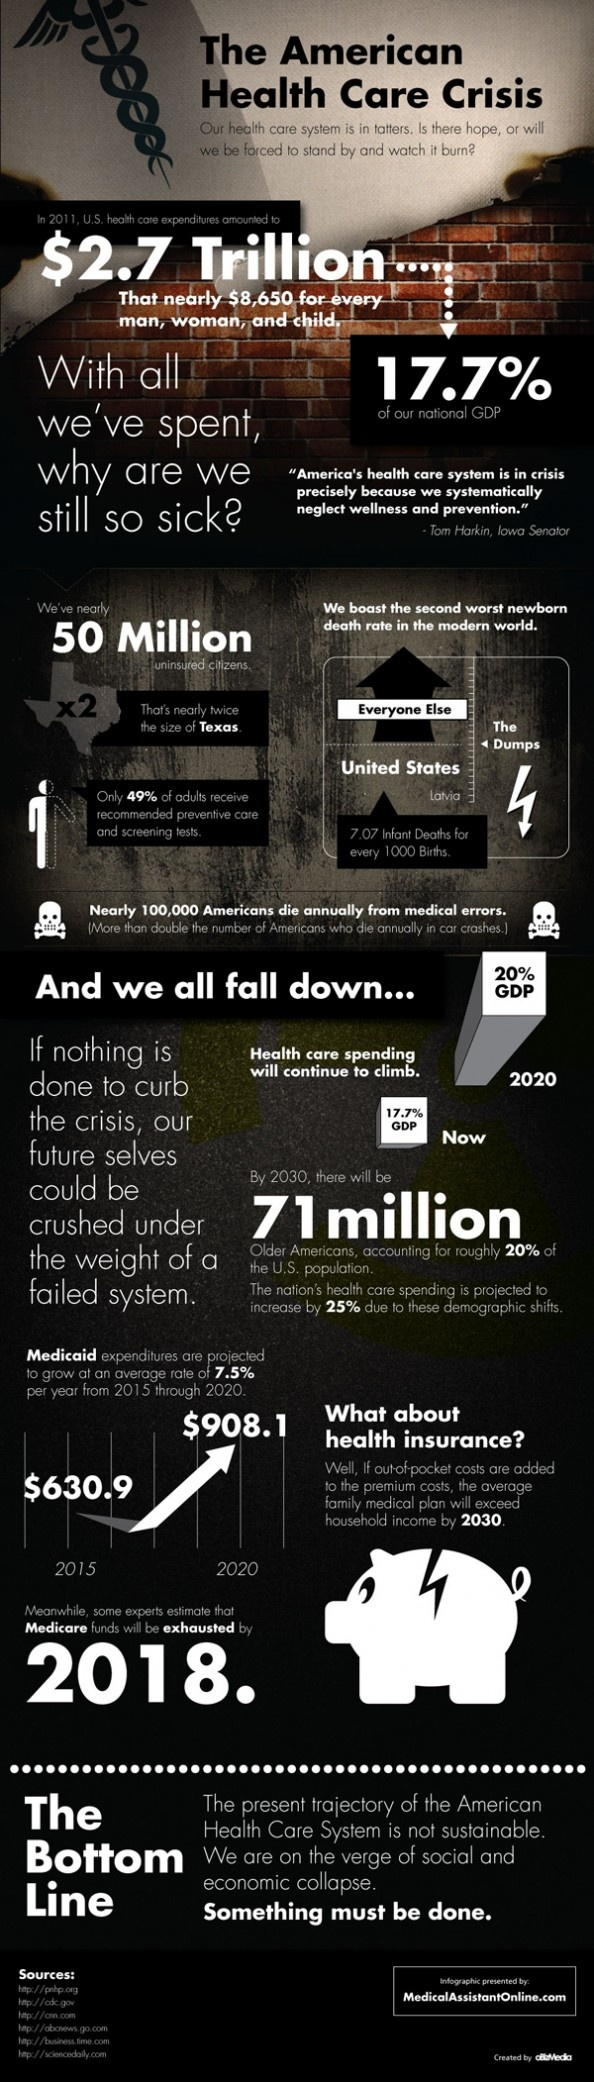 US Healthcare Crisis: In 2011 $2.7 Trillion spending grown exponentially on Healthcare. This is highest compared to any other country. But US Healthcare is not prefect. This rate will make us as country go bankrupt as there is very little left in budget for other things. Get the facts. #OpenOurMind: Vision Healthcare, American Healthcare, Health Care, Healthcare Education, Crisis Infographic, Healthcare Infographic, Healthcare Reformer, Healthcare Blog, Healthcare Crisis